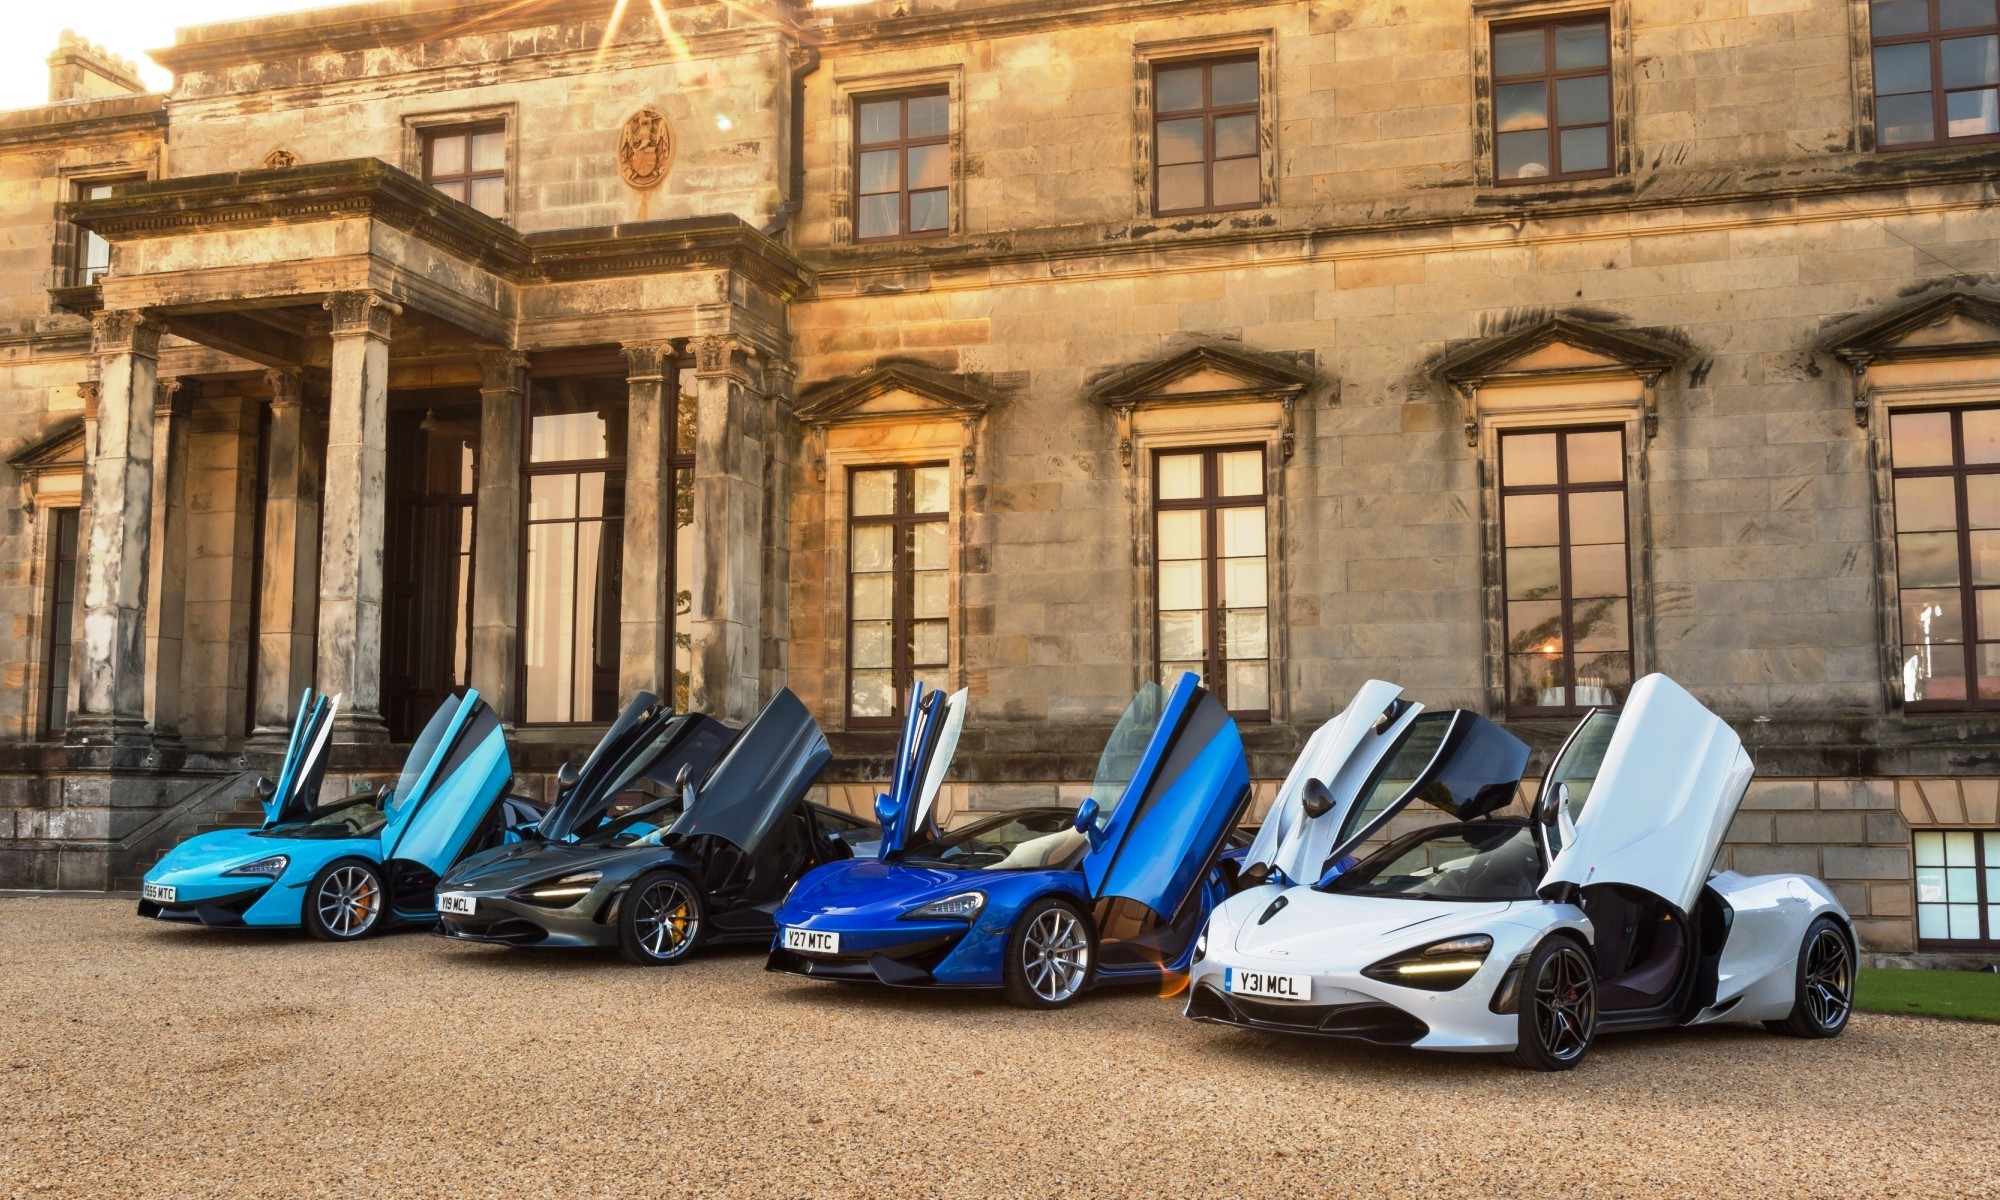 Some of the McLaren family on show